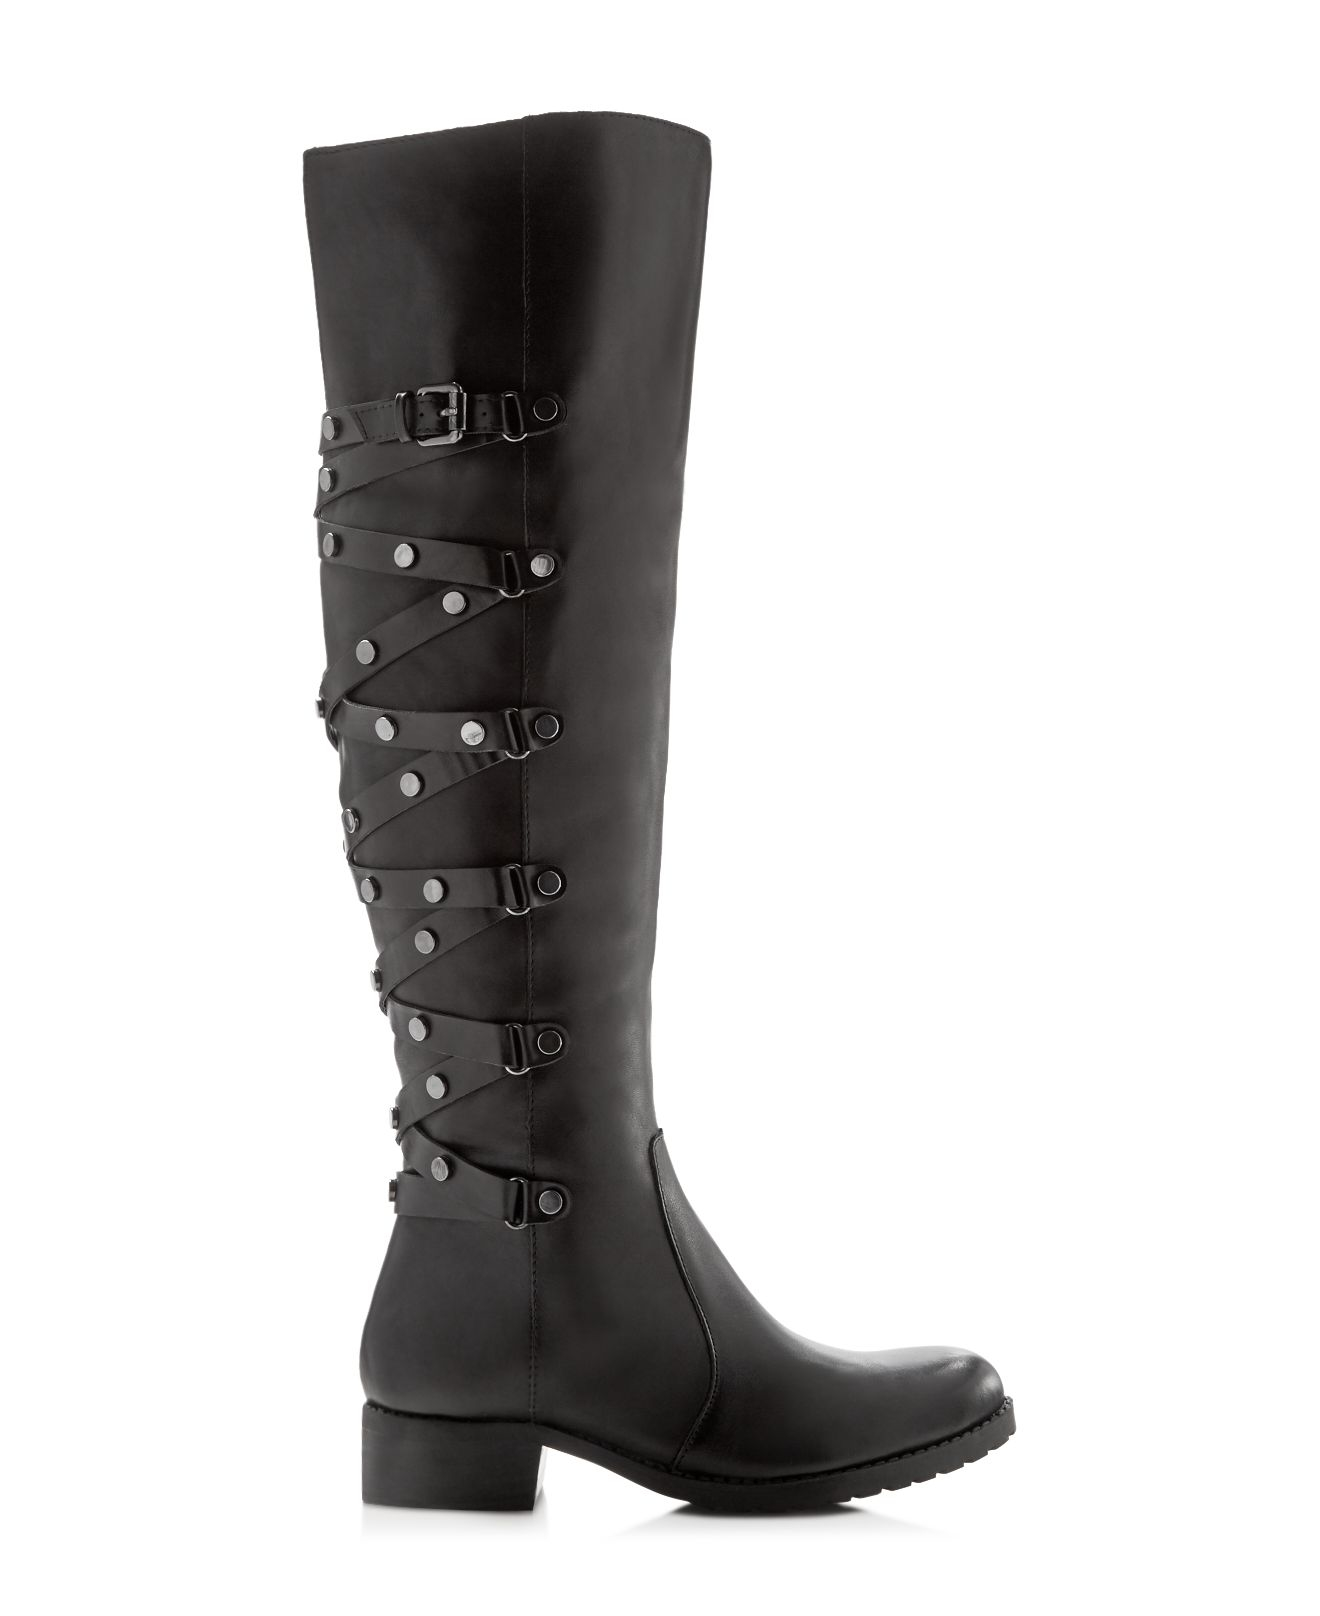 Carlos By Carlos Santana Lace Metropolis Over The Knee Boots - Compare At $225 in Black